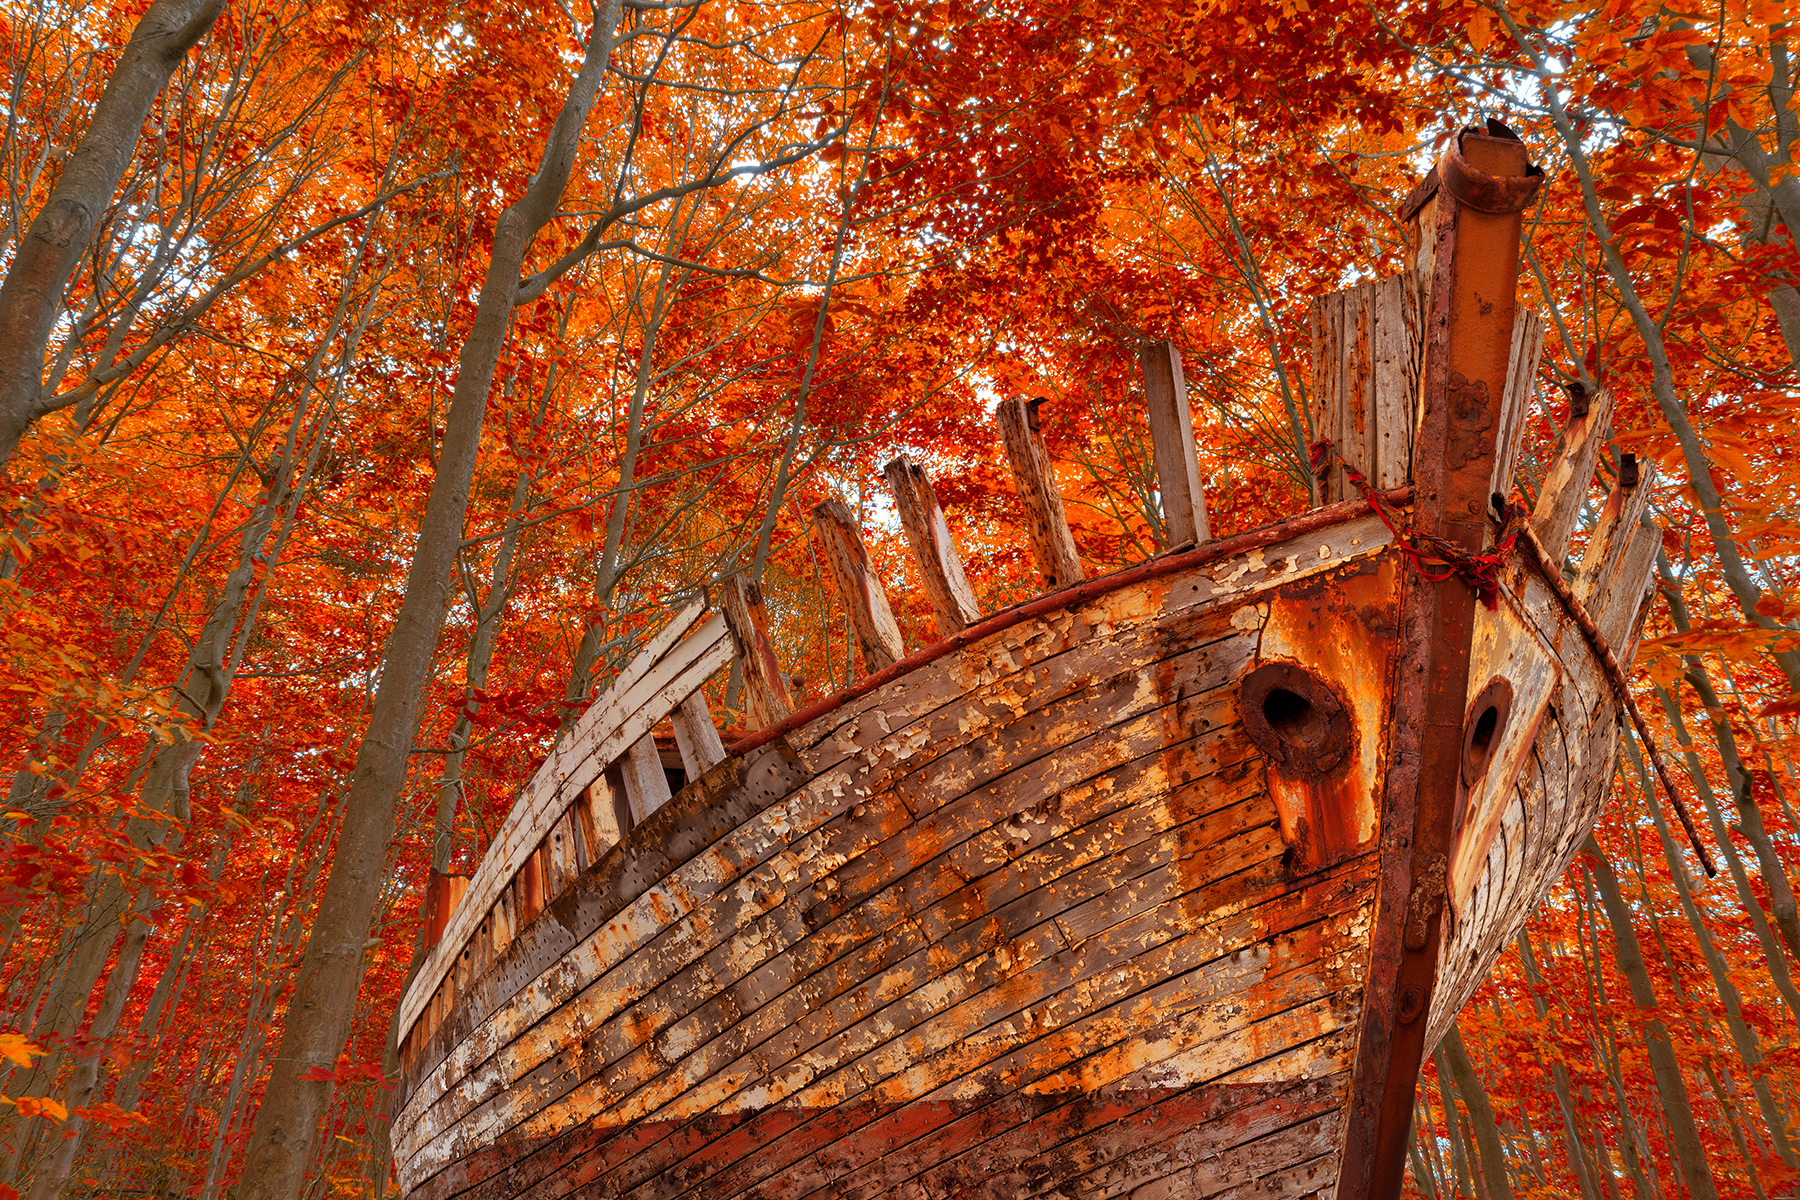 Fall Forest Shipwreck, Abandoned, Outdoors, Ruins, Ruin, HQ Photo